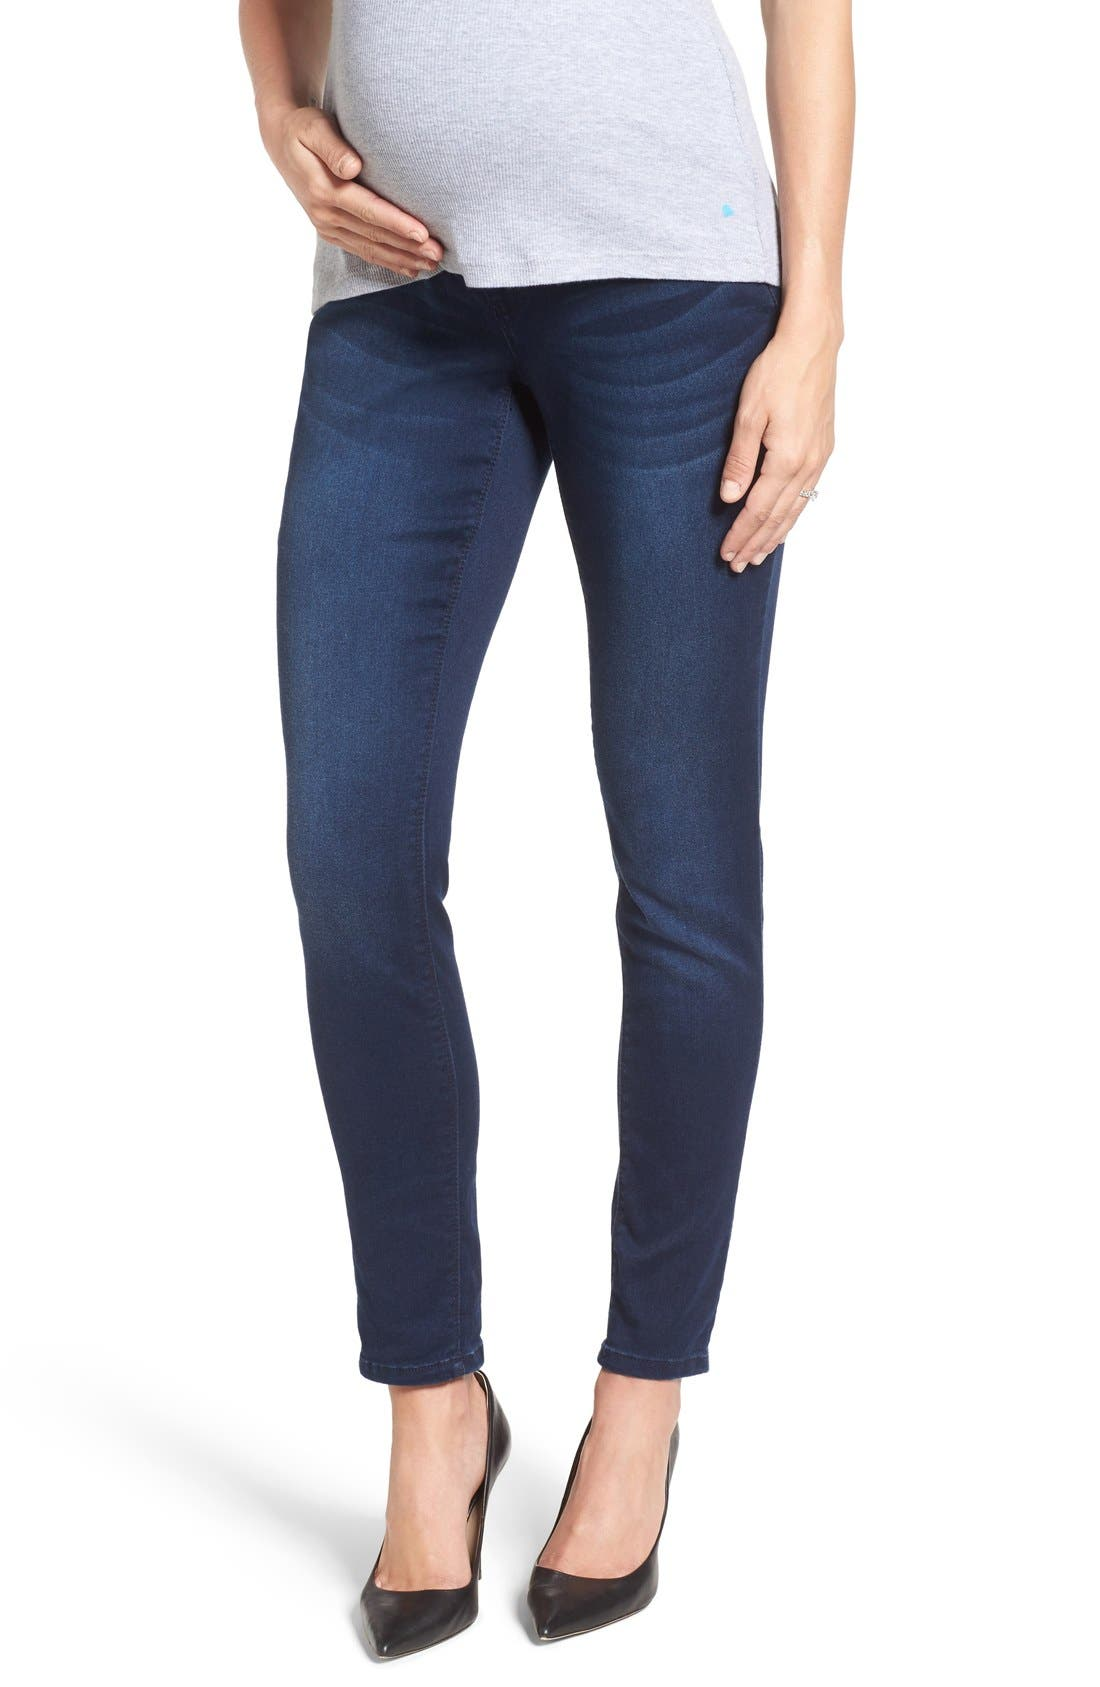 'Ankle Biter' Over the Bump Rolled Cuff Maternity Skinny Jeans,                             Main thumbnail 1, color,                             Lennox